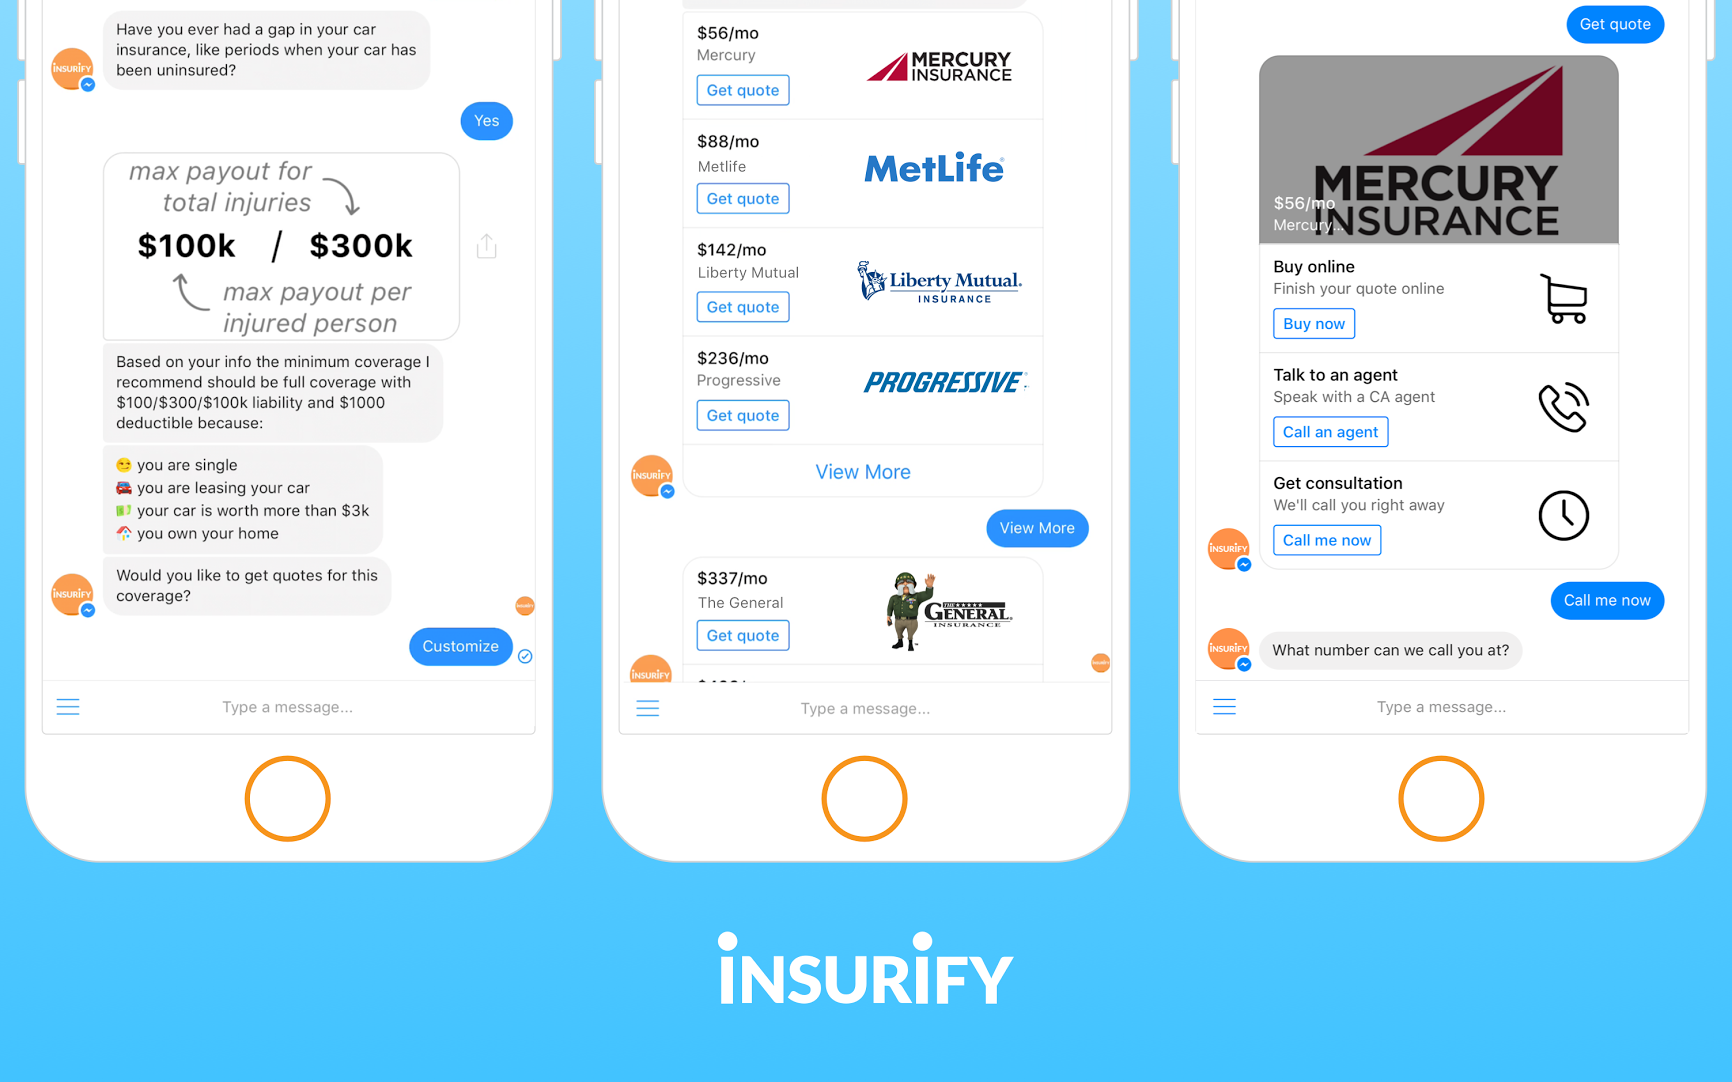 Insurify announces $4 6M funding and a chatbot